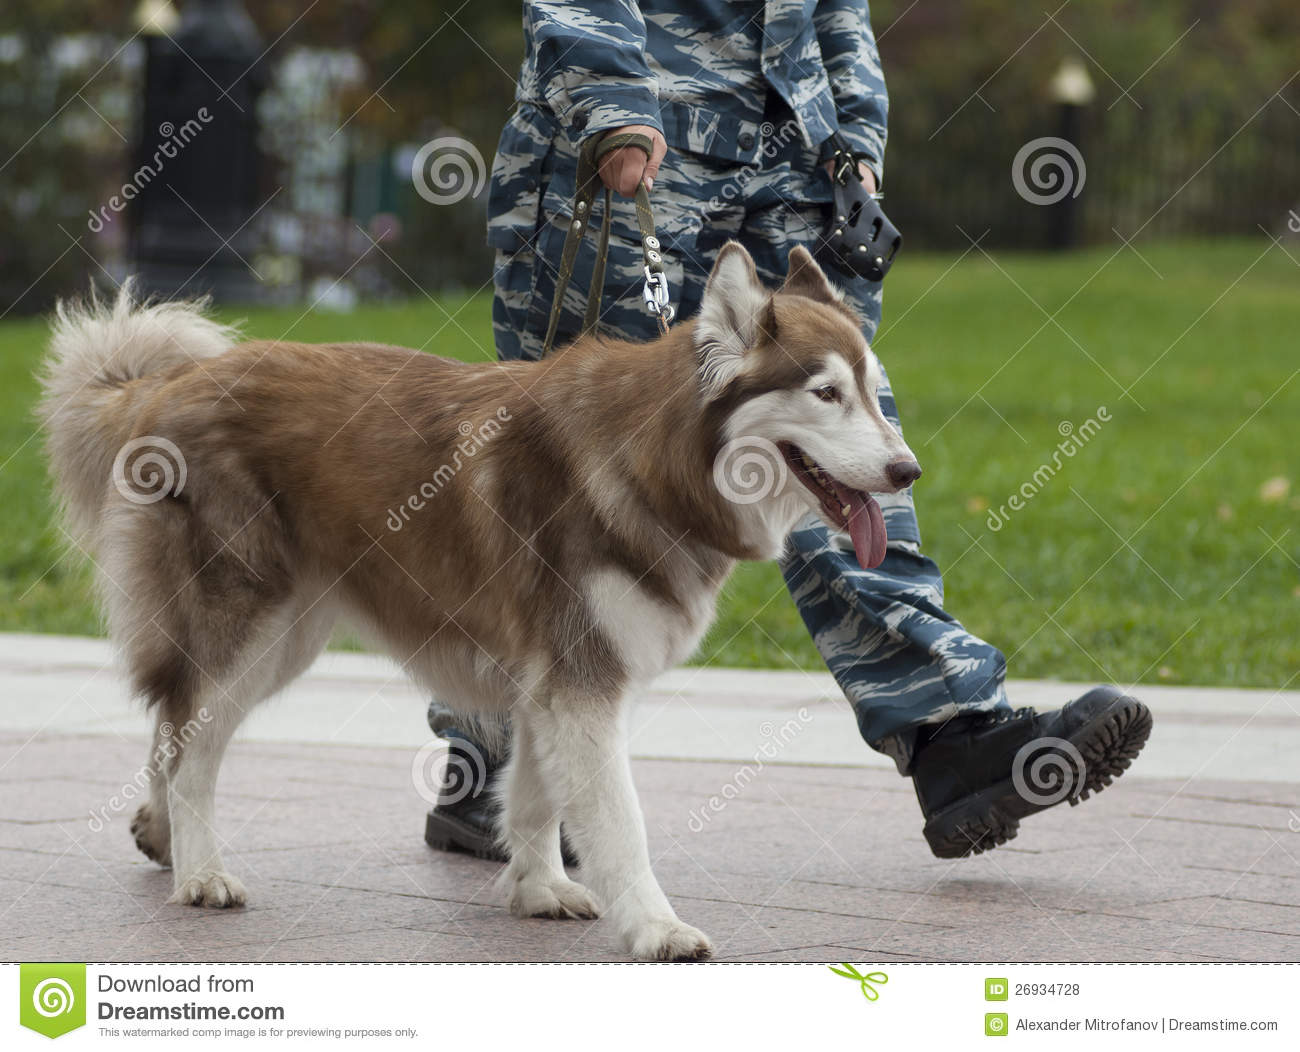 Molossus of Epirus Dog: Molossus Dog Breeds Man And Dog Are Training Obedience Royalty Free Cliparts